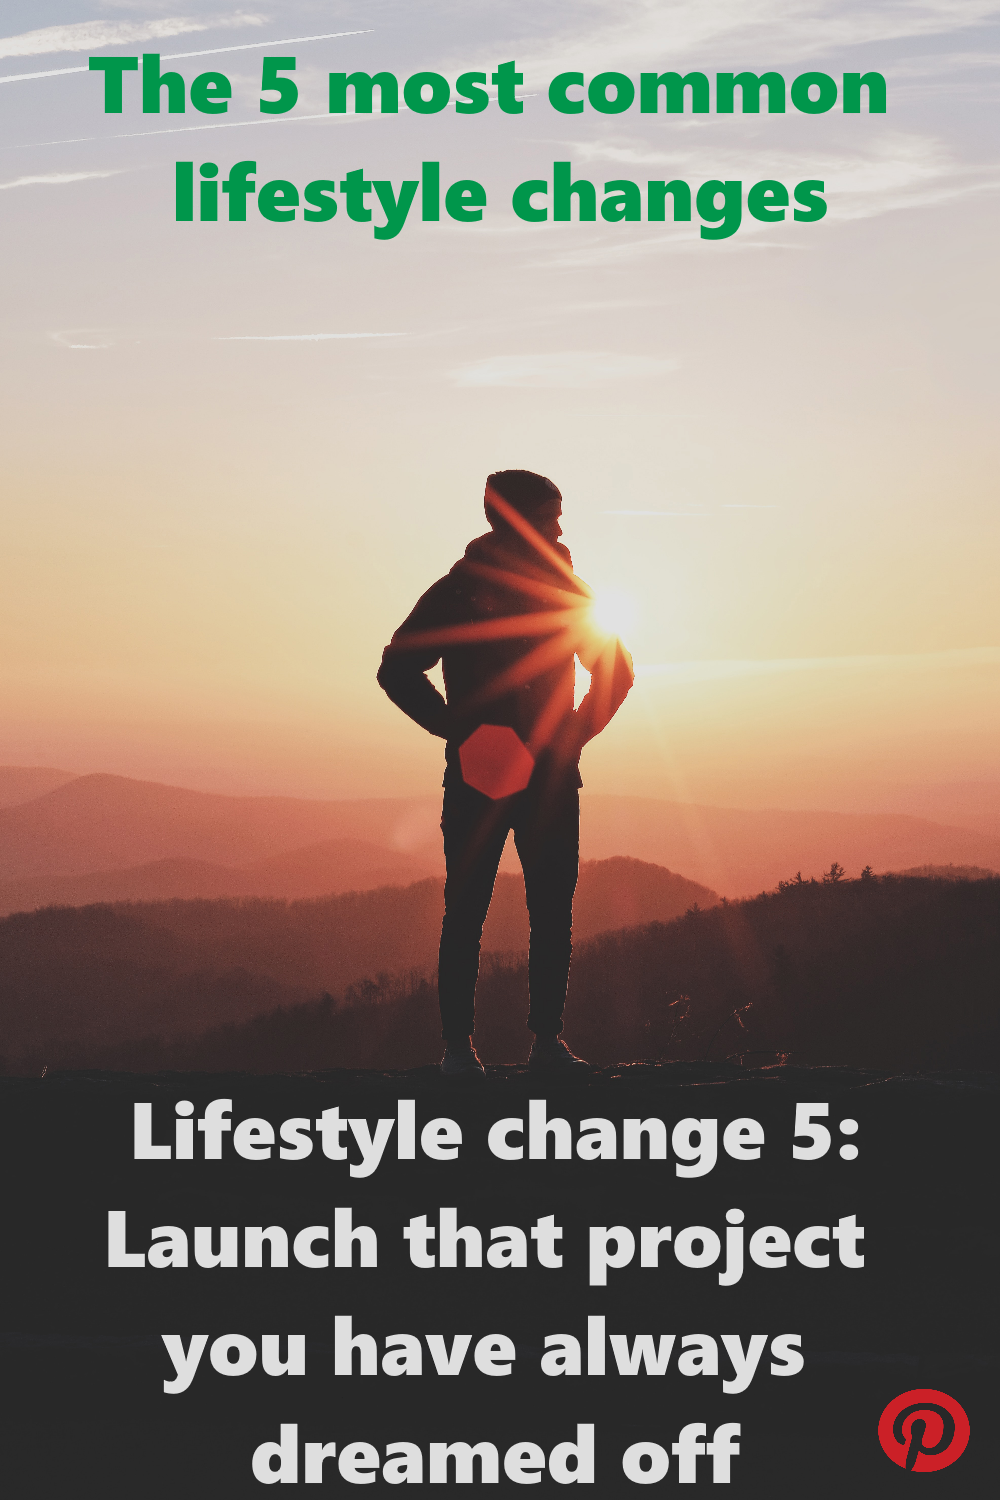 The 5 most common lifestyle changes - #5 Taking a break to launch that long-desired project